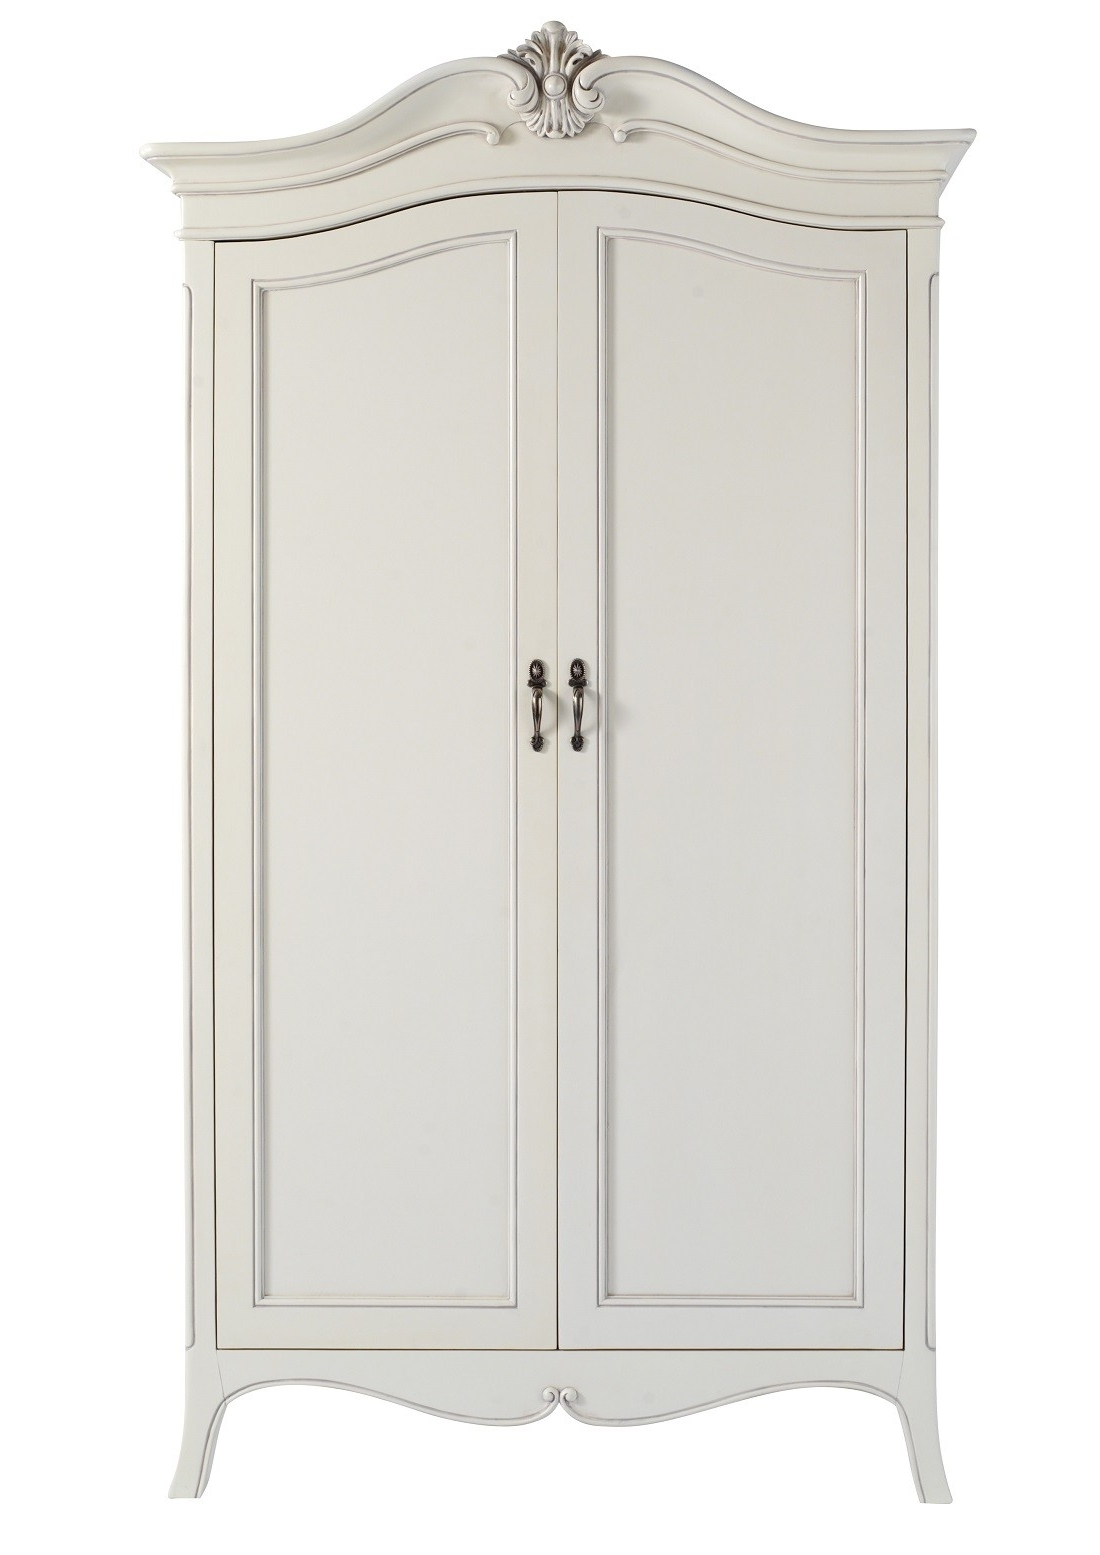 White French Style Wardrobes Pertaining To Favorite Louis French Ivory Painted 2 Door Double Wardrobe (View 8 of 15)